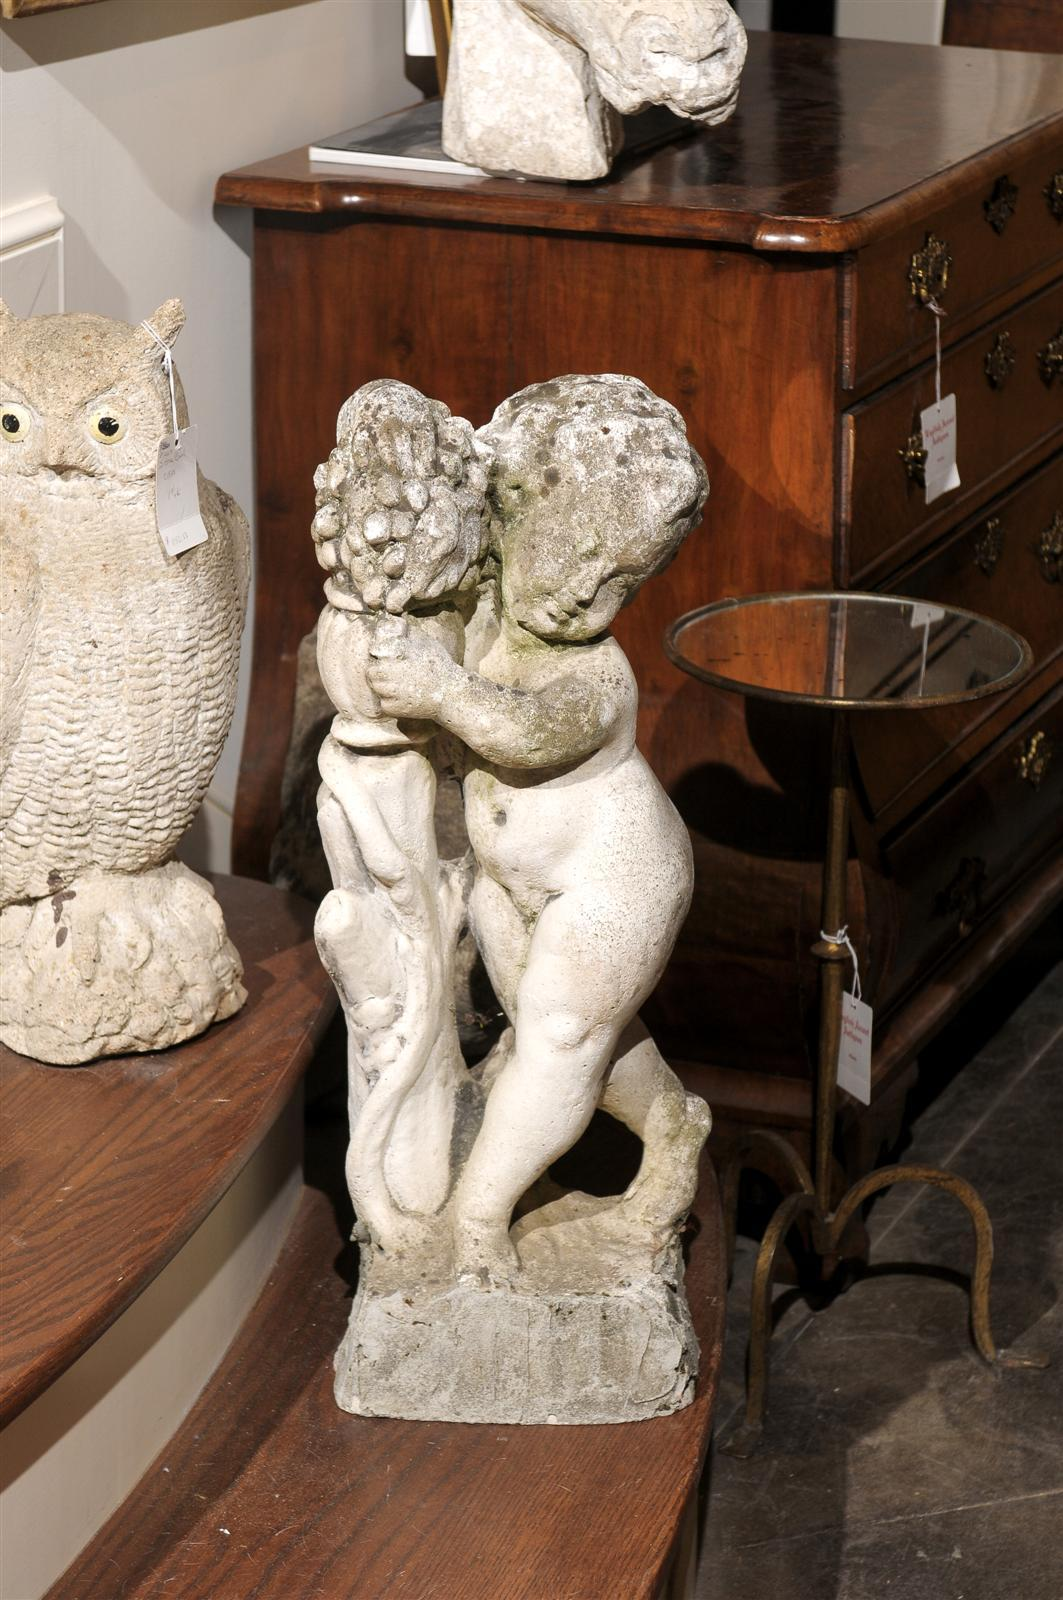 This delightful French stone statue from the mid 20th century, features a small putto figure leaning against a trunk holding a vase and grapes. Perhaps one of the followers of the god Bacchus from the Greco-Roman mythology, this cheeky cherub seems